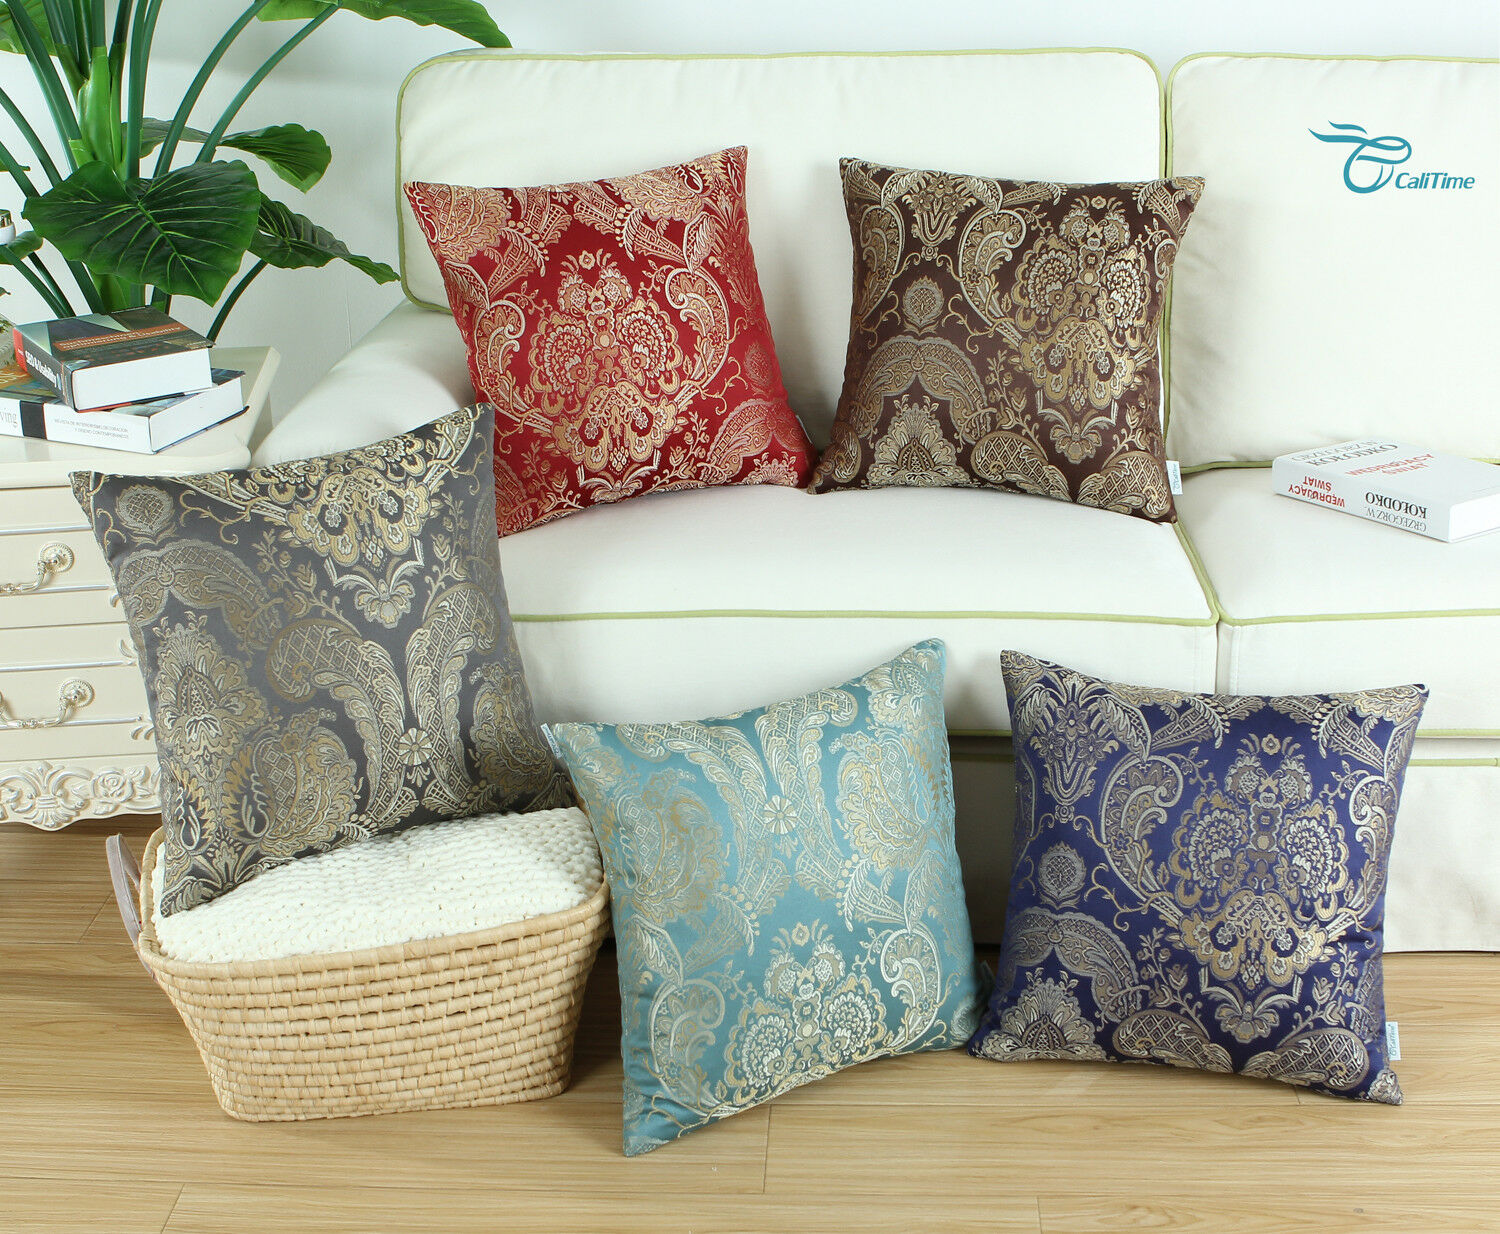 CaliTime Square Throw Pillow Shell Cushion Cover Damask Flor